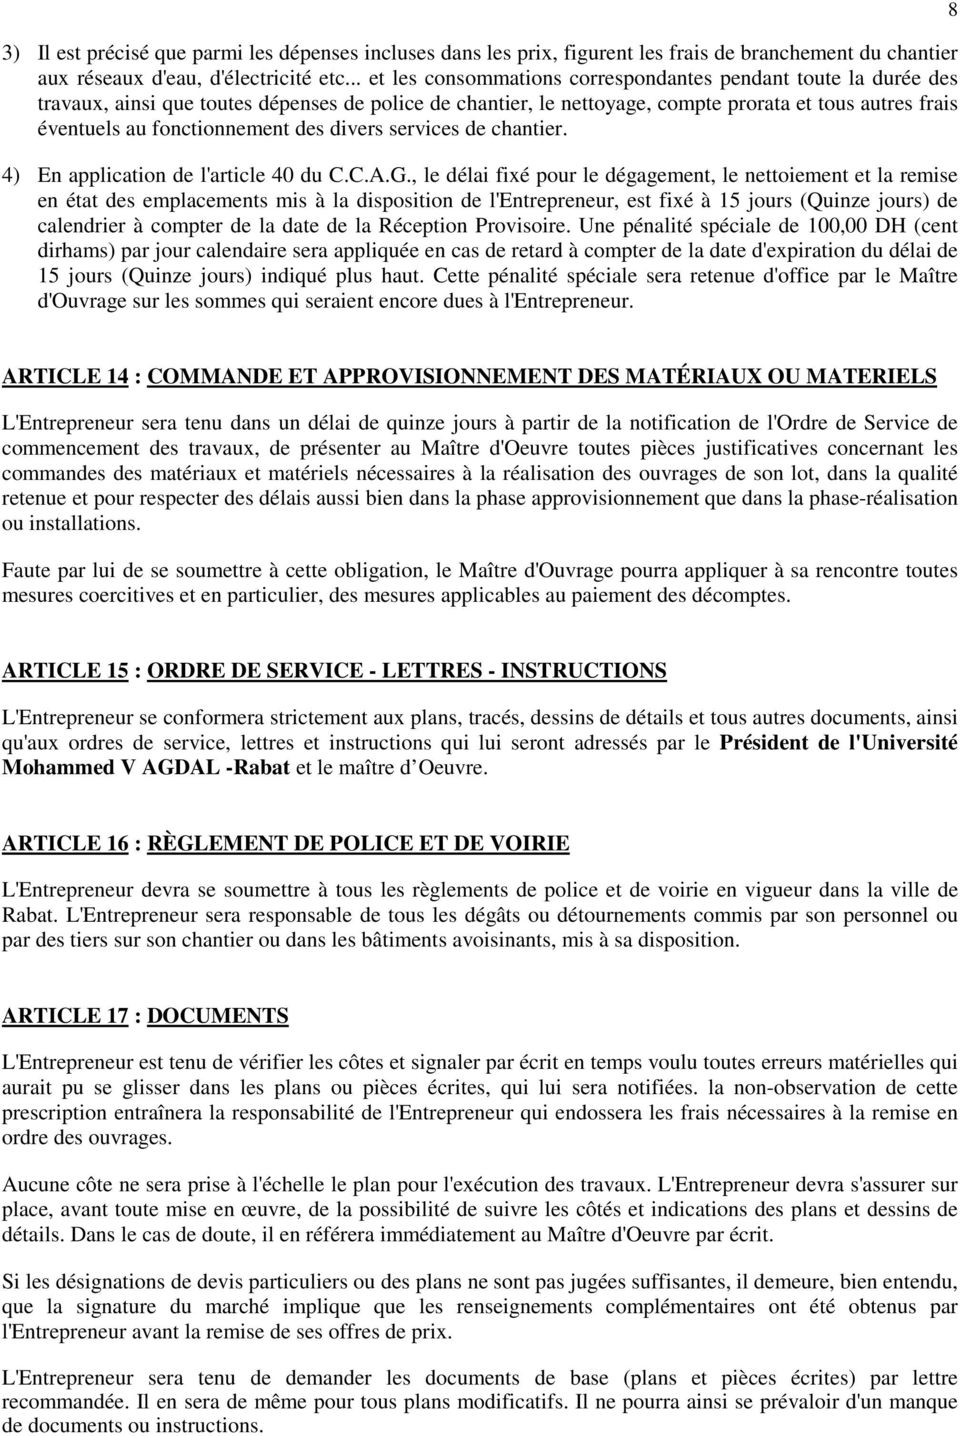 fonctionnement des divers services de chantier. 4) En application de l'article 40 du C.C.A.G.